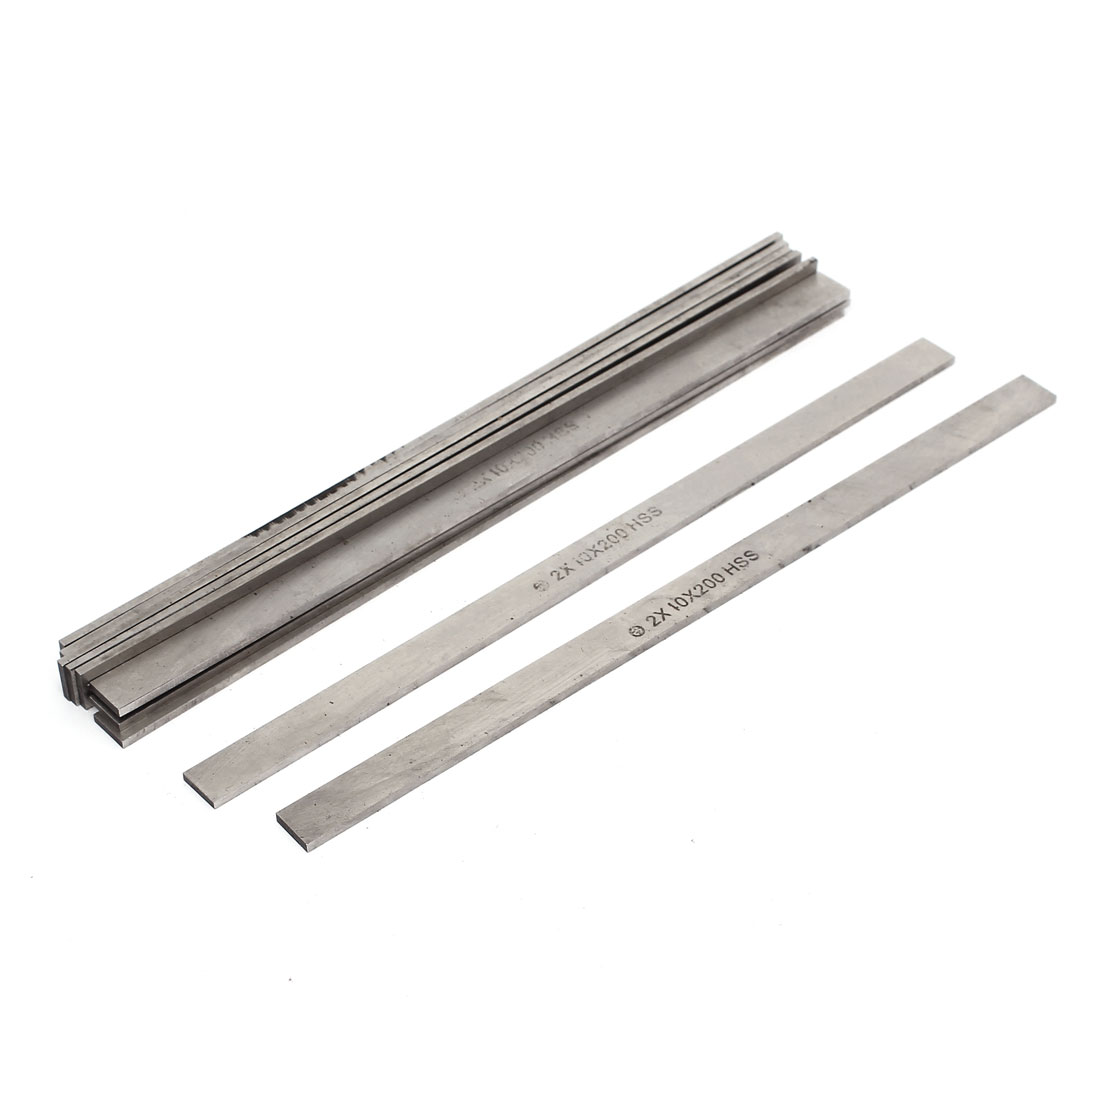 2mmx10mmx200mm Turning Parting Milling Lathe Cutting Boring HSS Tool Bits 10 Pcs